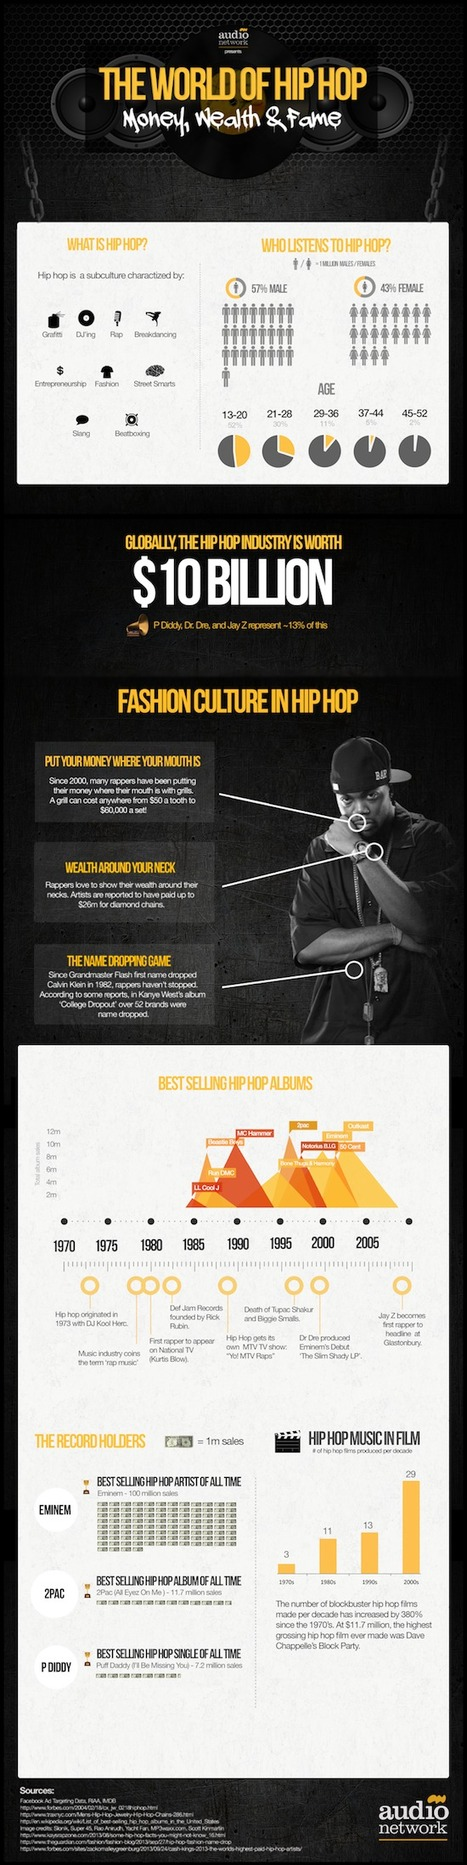 The World of Hip Hop Infographic | G-Tips: Social Media & Marketing | Scoop.it